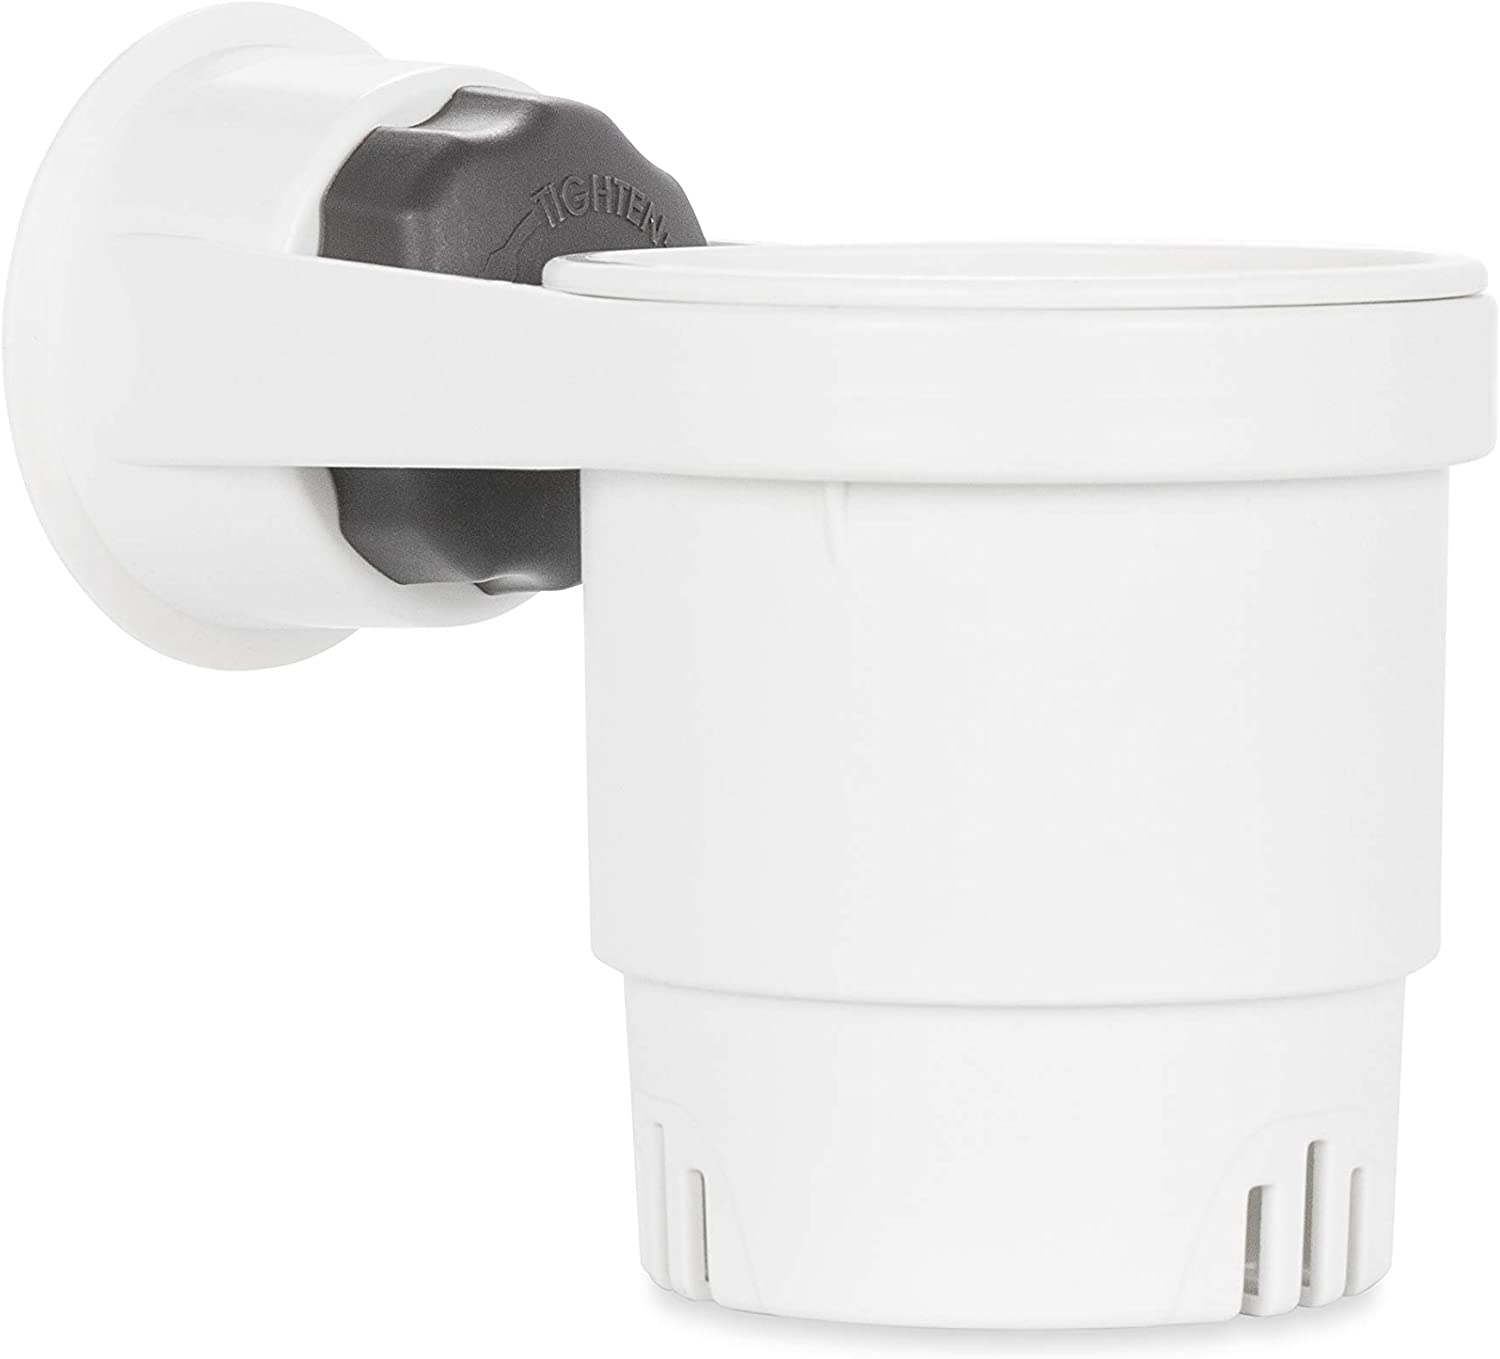 Camco Cup Holder with Mechanical Suction Cup - Provides a Secure Location for Your Beverage - Compatible with Most Cups, Cans, Bottles and Tumblers - White (53084)